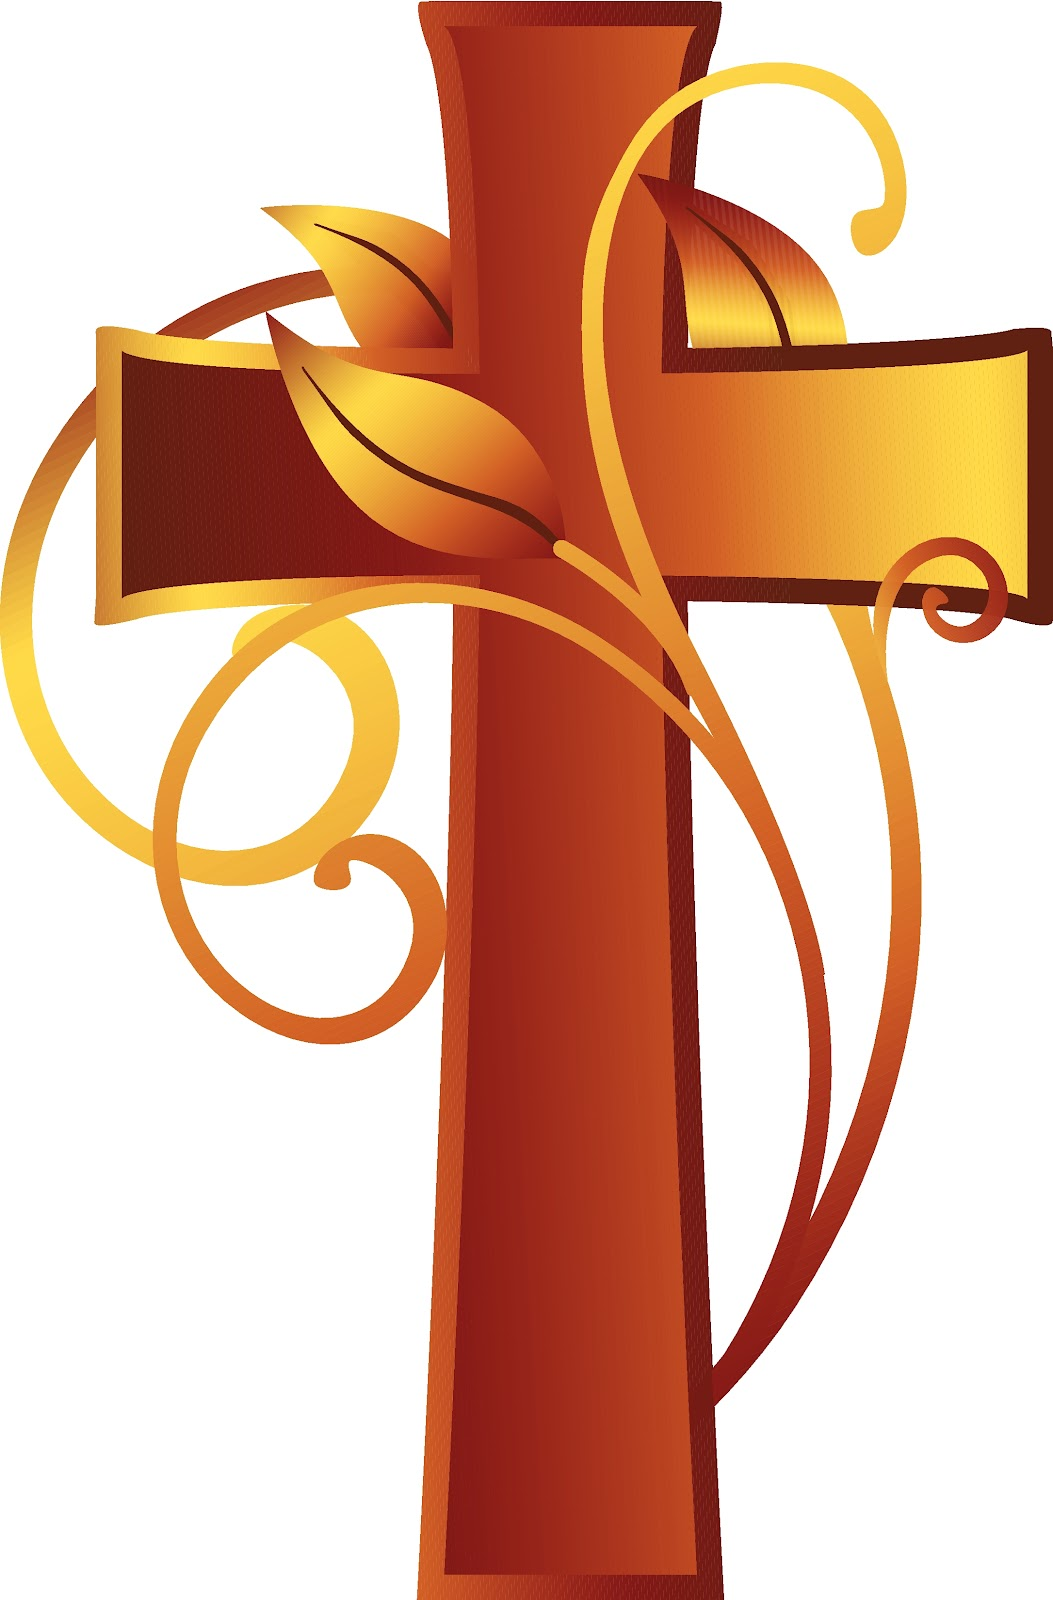 Free christian ushers with a cross clipart image.